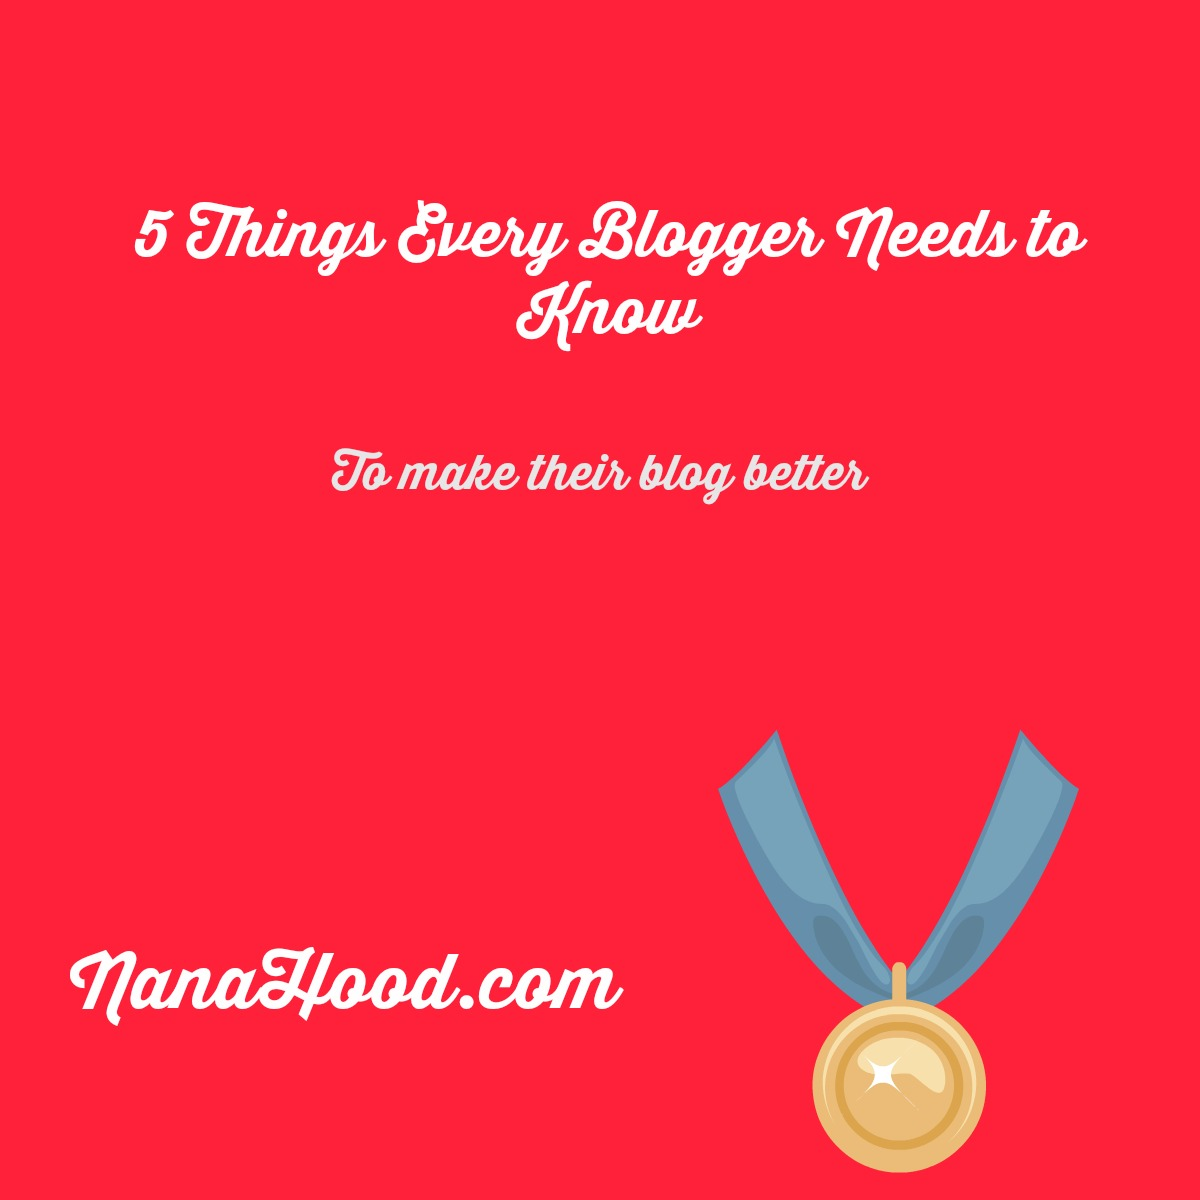 5 things every blogger needs to know